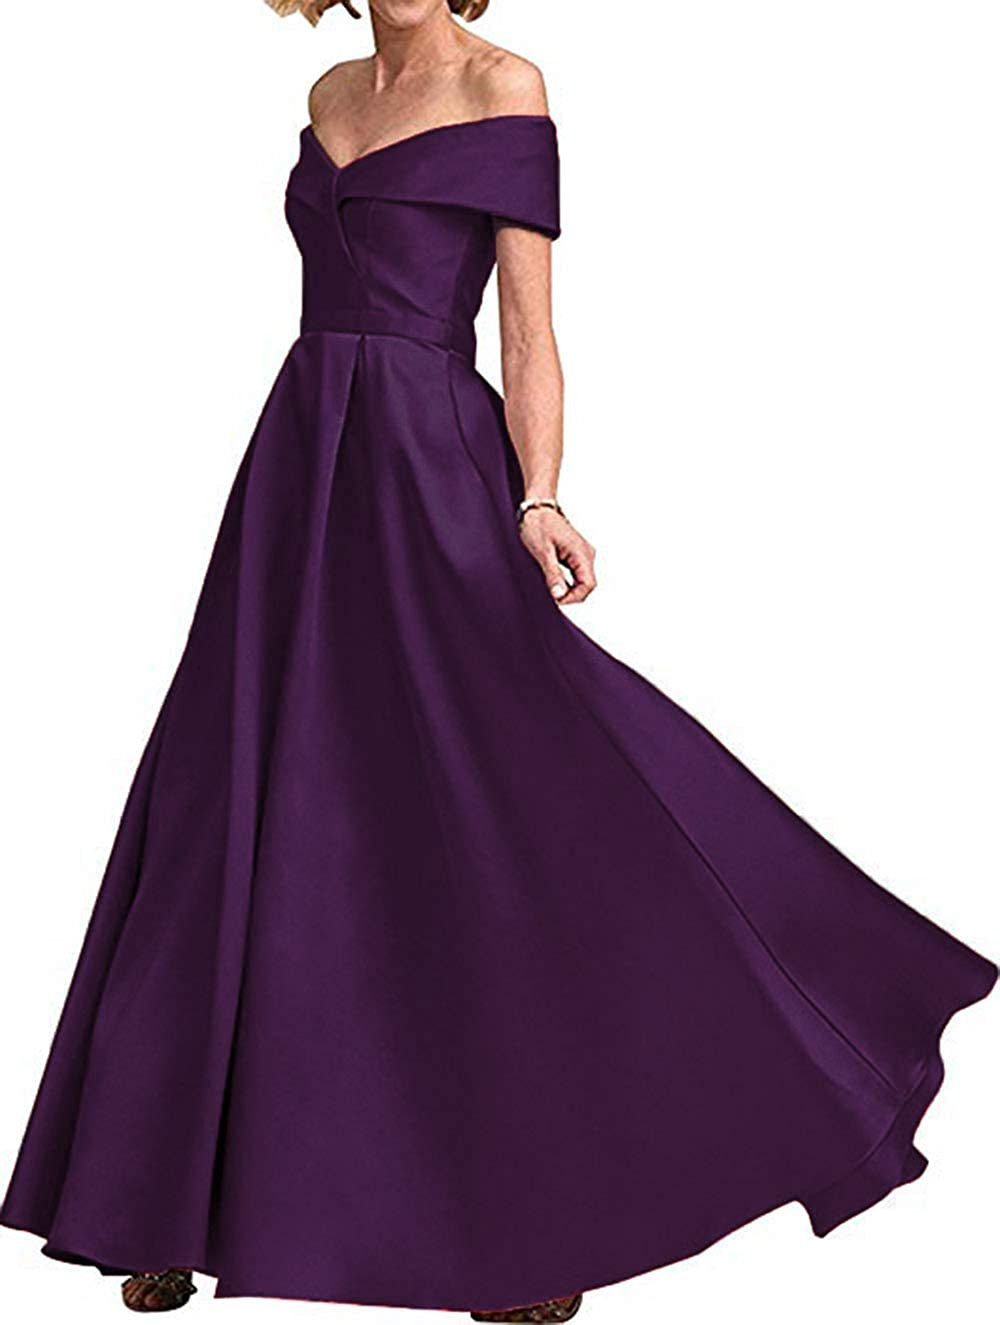 Grape Rmaytiked Womens Off The Shoulder Prom Dresses Long 2019 Satin A Line Formal Evening Ball Gowns with Pockets